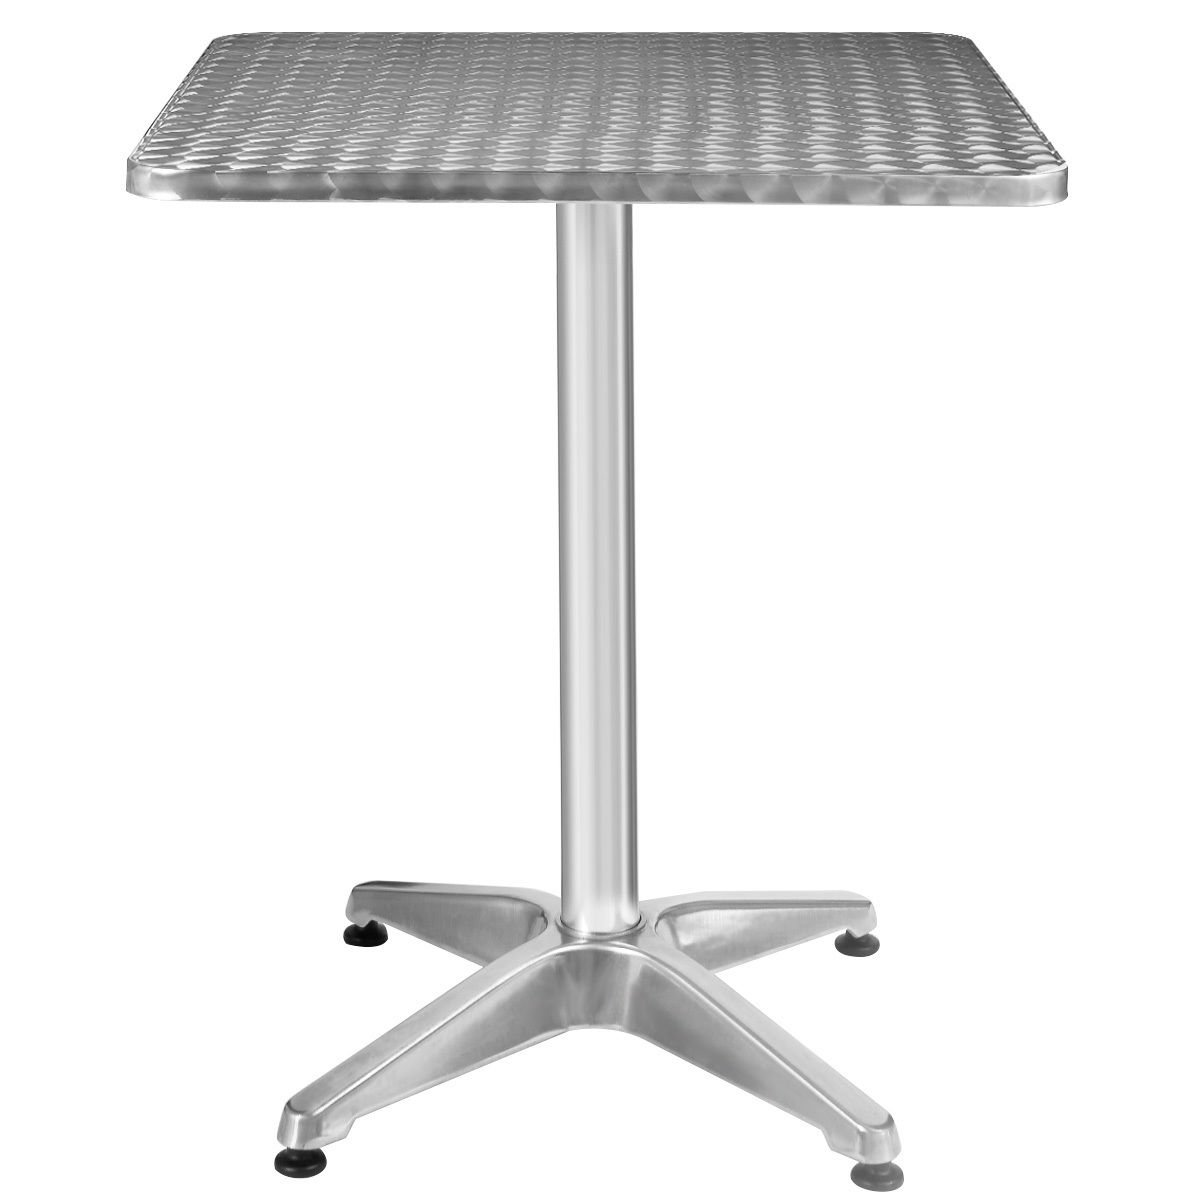 MTN Gearsmith New Adjustable Aluminum Stainless Steel Square Table 23 1/2'' Patio Pub Restaurant by MTN Gearsmith